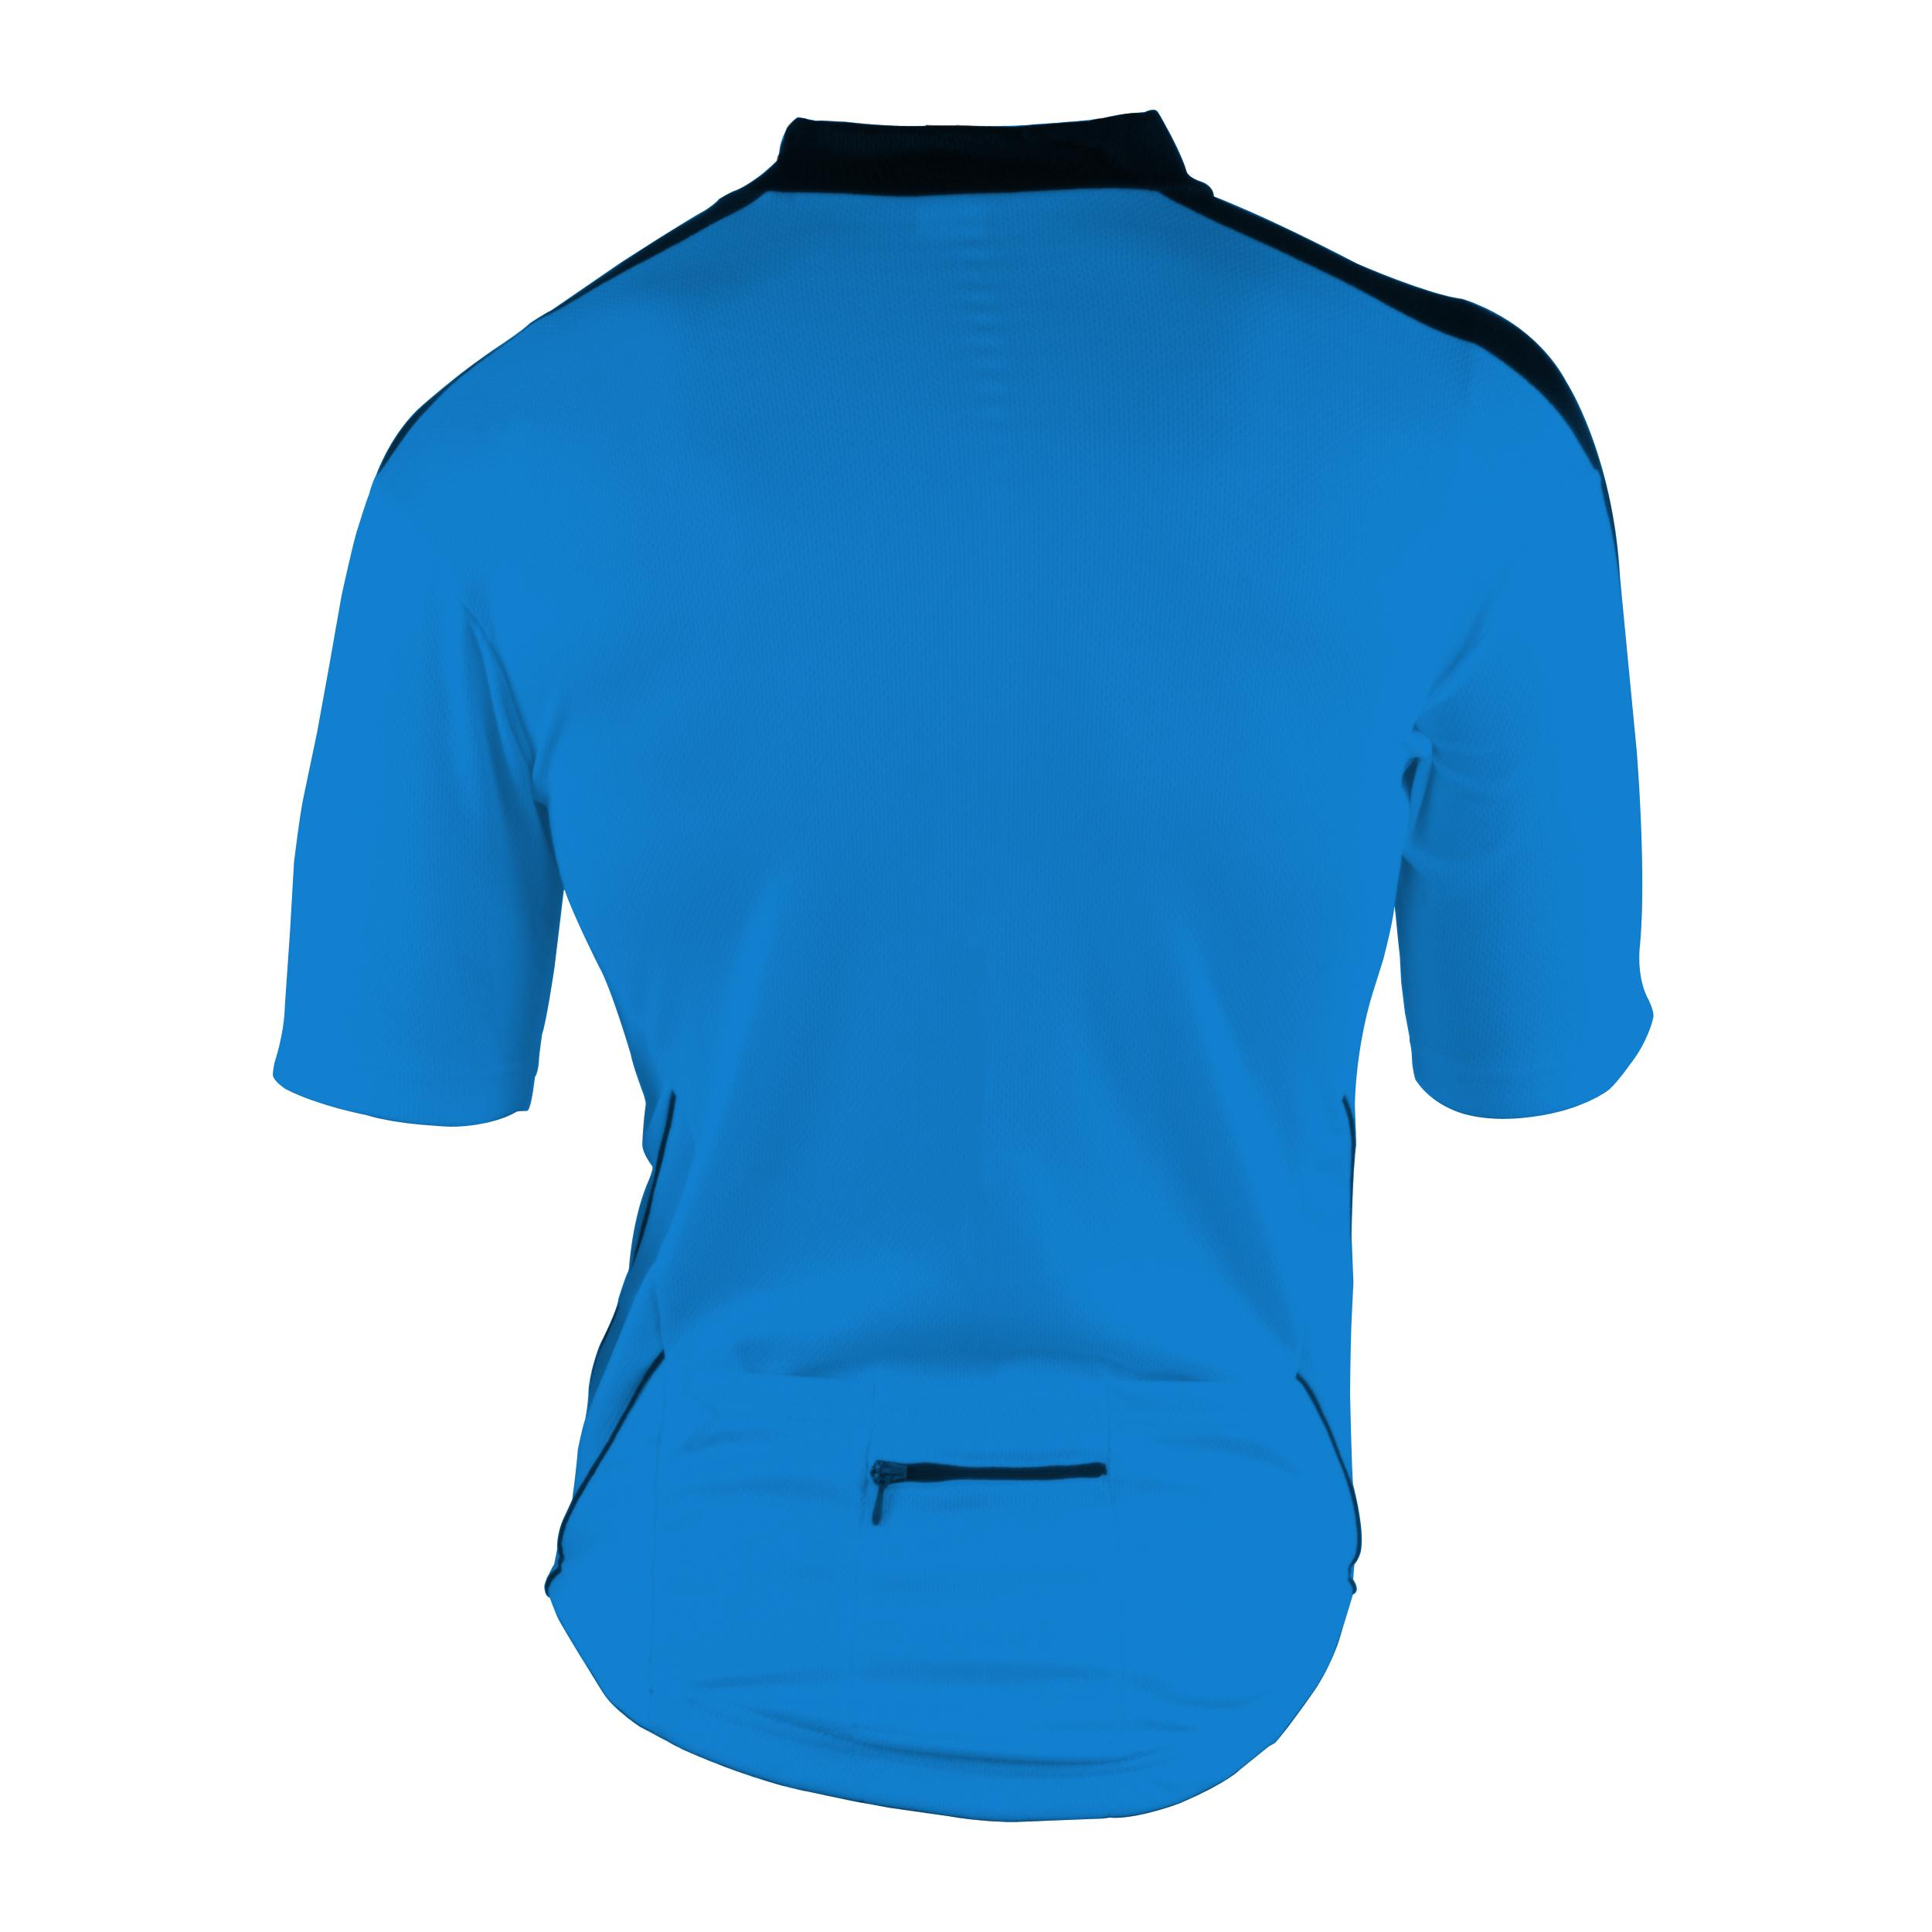 Cycle Force Men's M-Wave Blue Bicycle Jersey - Thumbnail 1